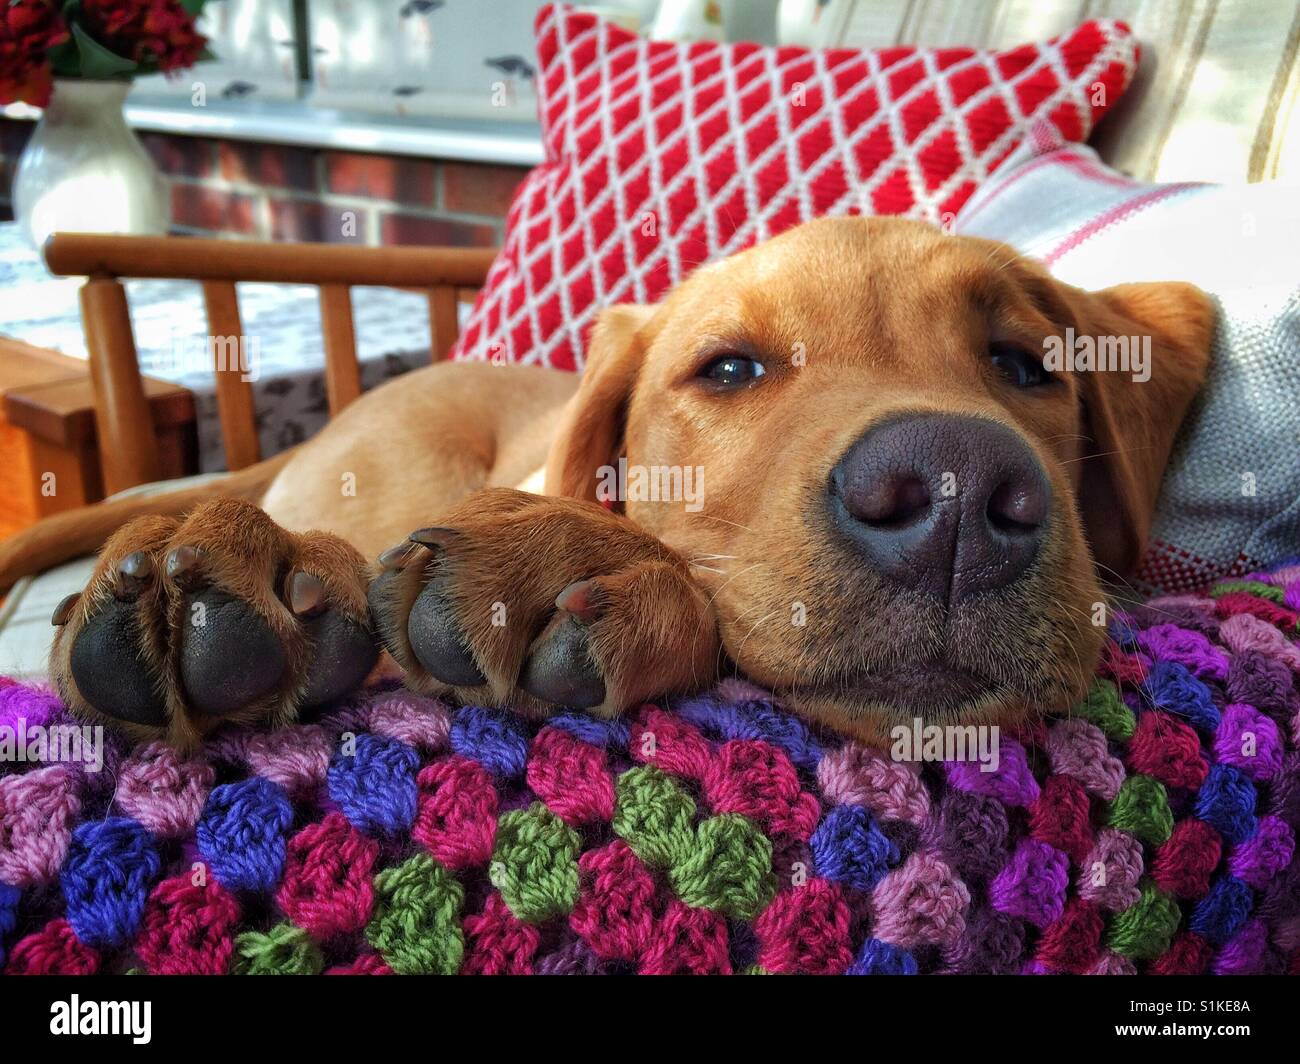 A tired Labrador Retriever puppy or dog snoozing and sleeping with its paws resting on a colourful blanket whilst - Stock Image